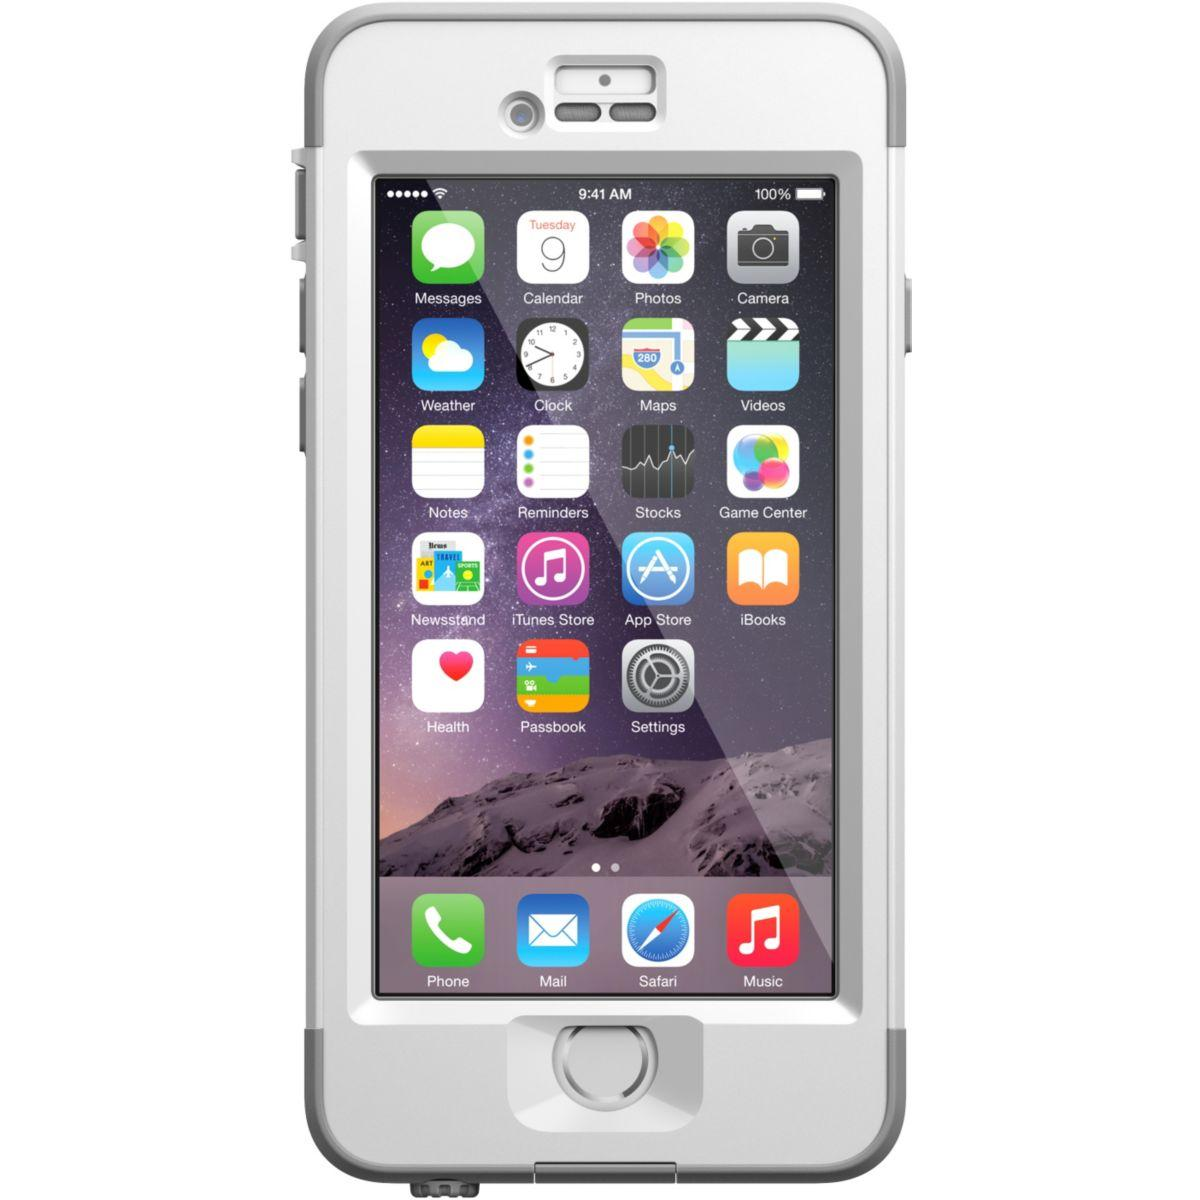 Coque lifeproof nuud iphone 6 blanche v2 - livraison offerte : code liv